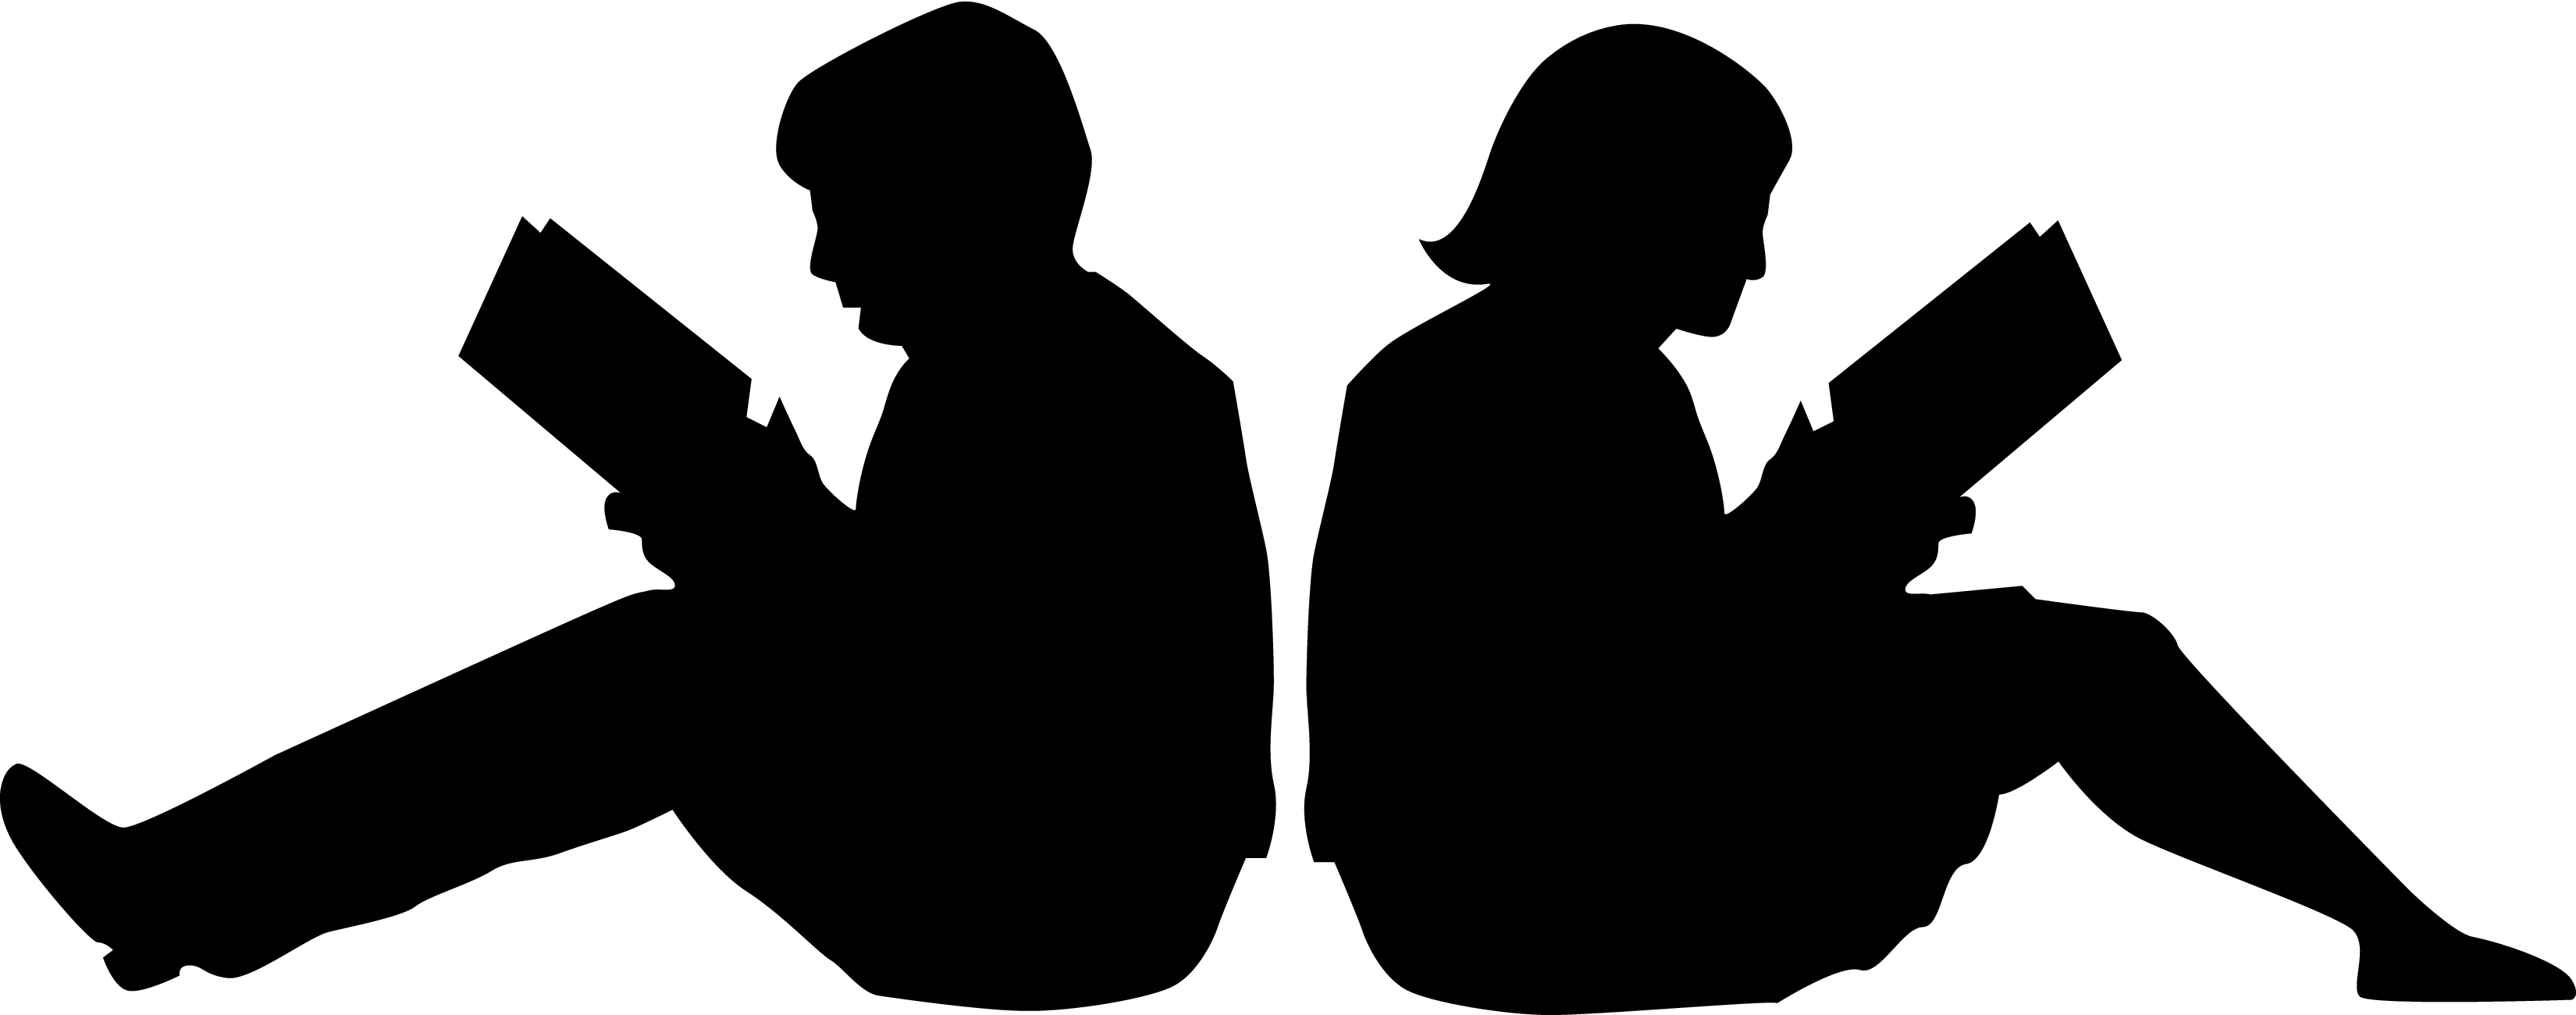 Students Silhouette at GetDrawings.com.